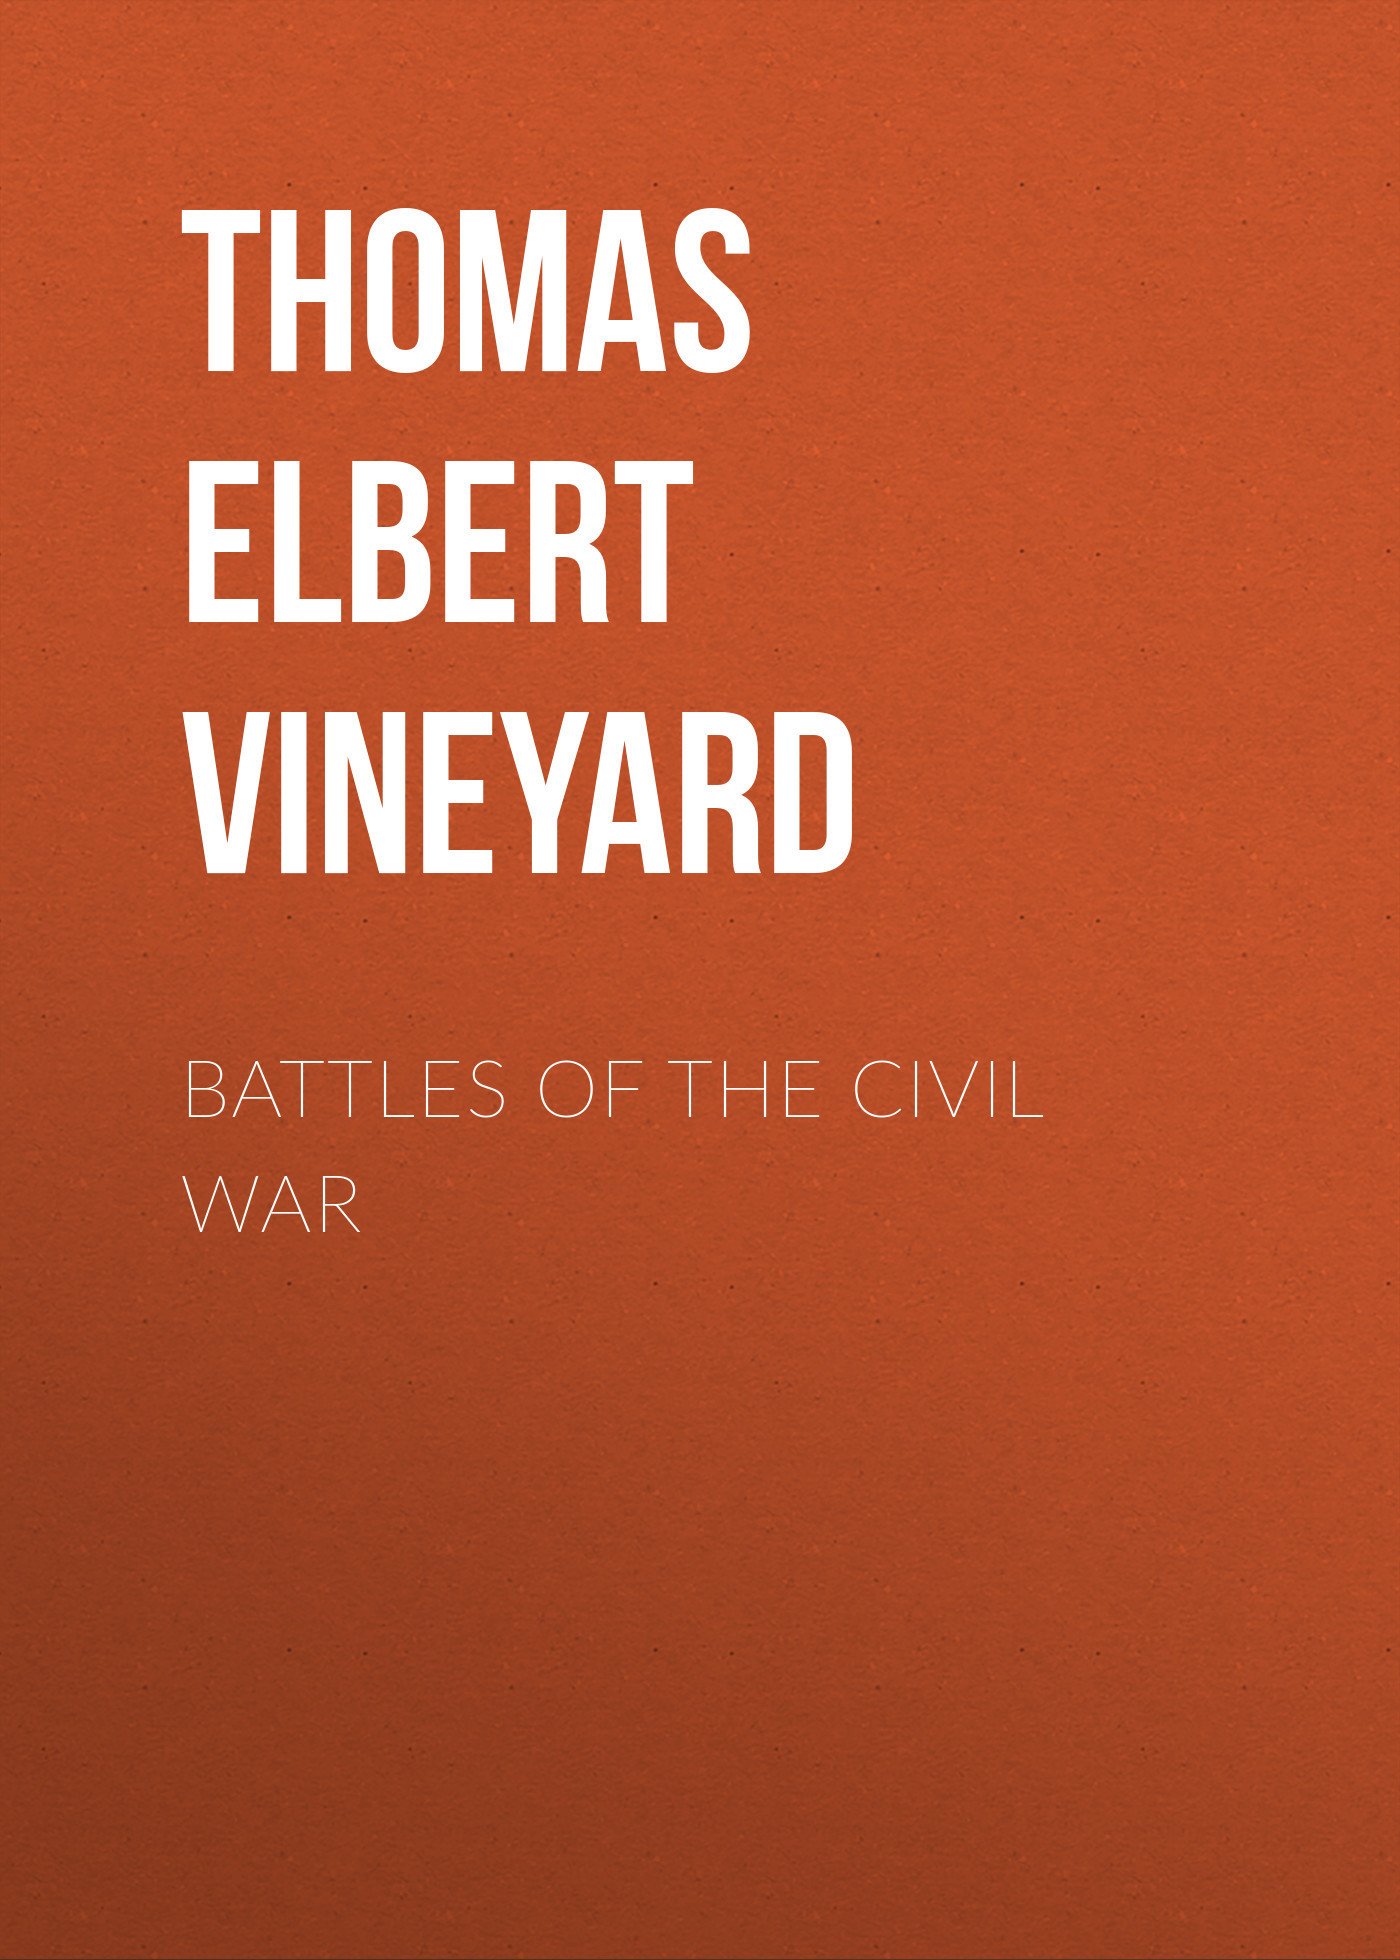 Thomas Elbert Vineyard Battles of the Civil War the american civil war